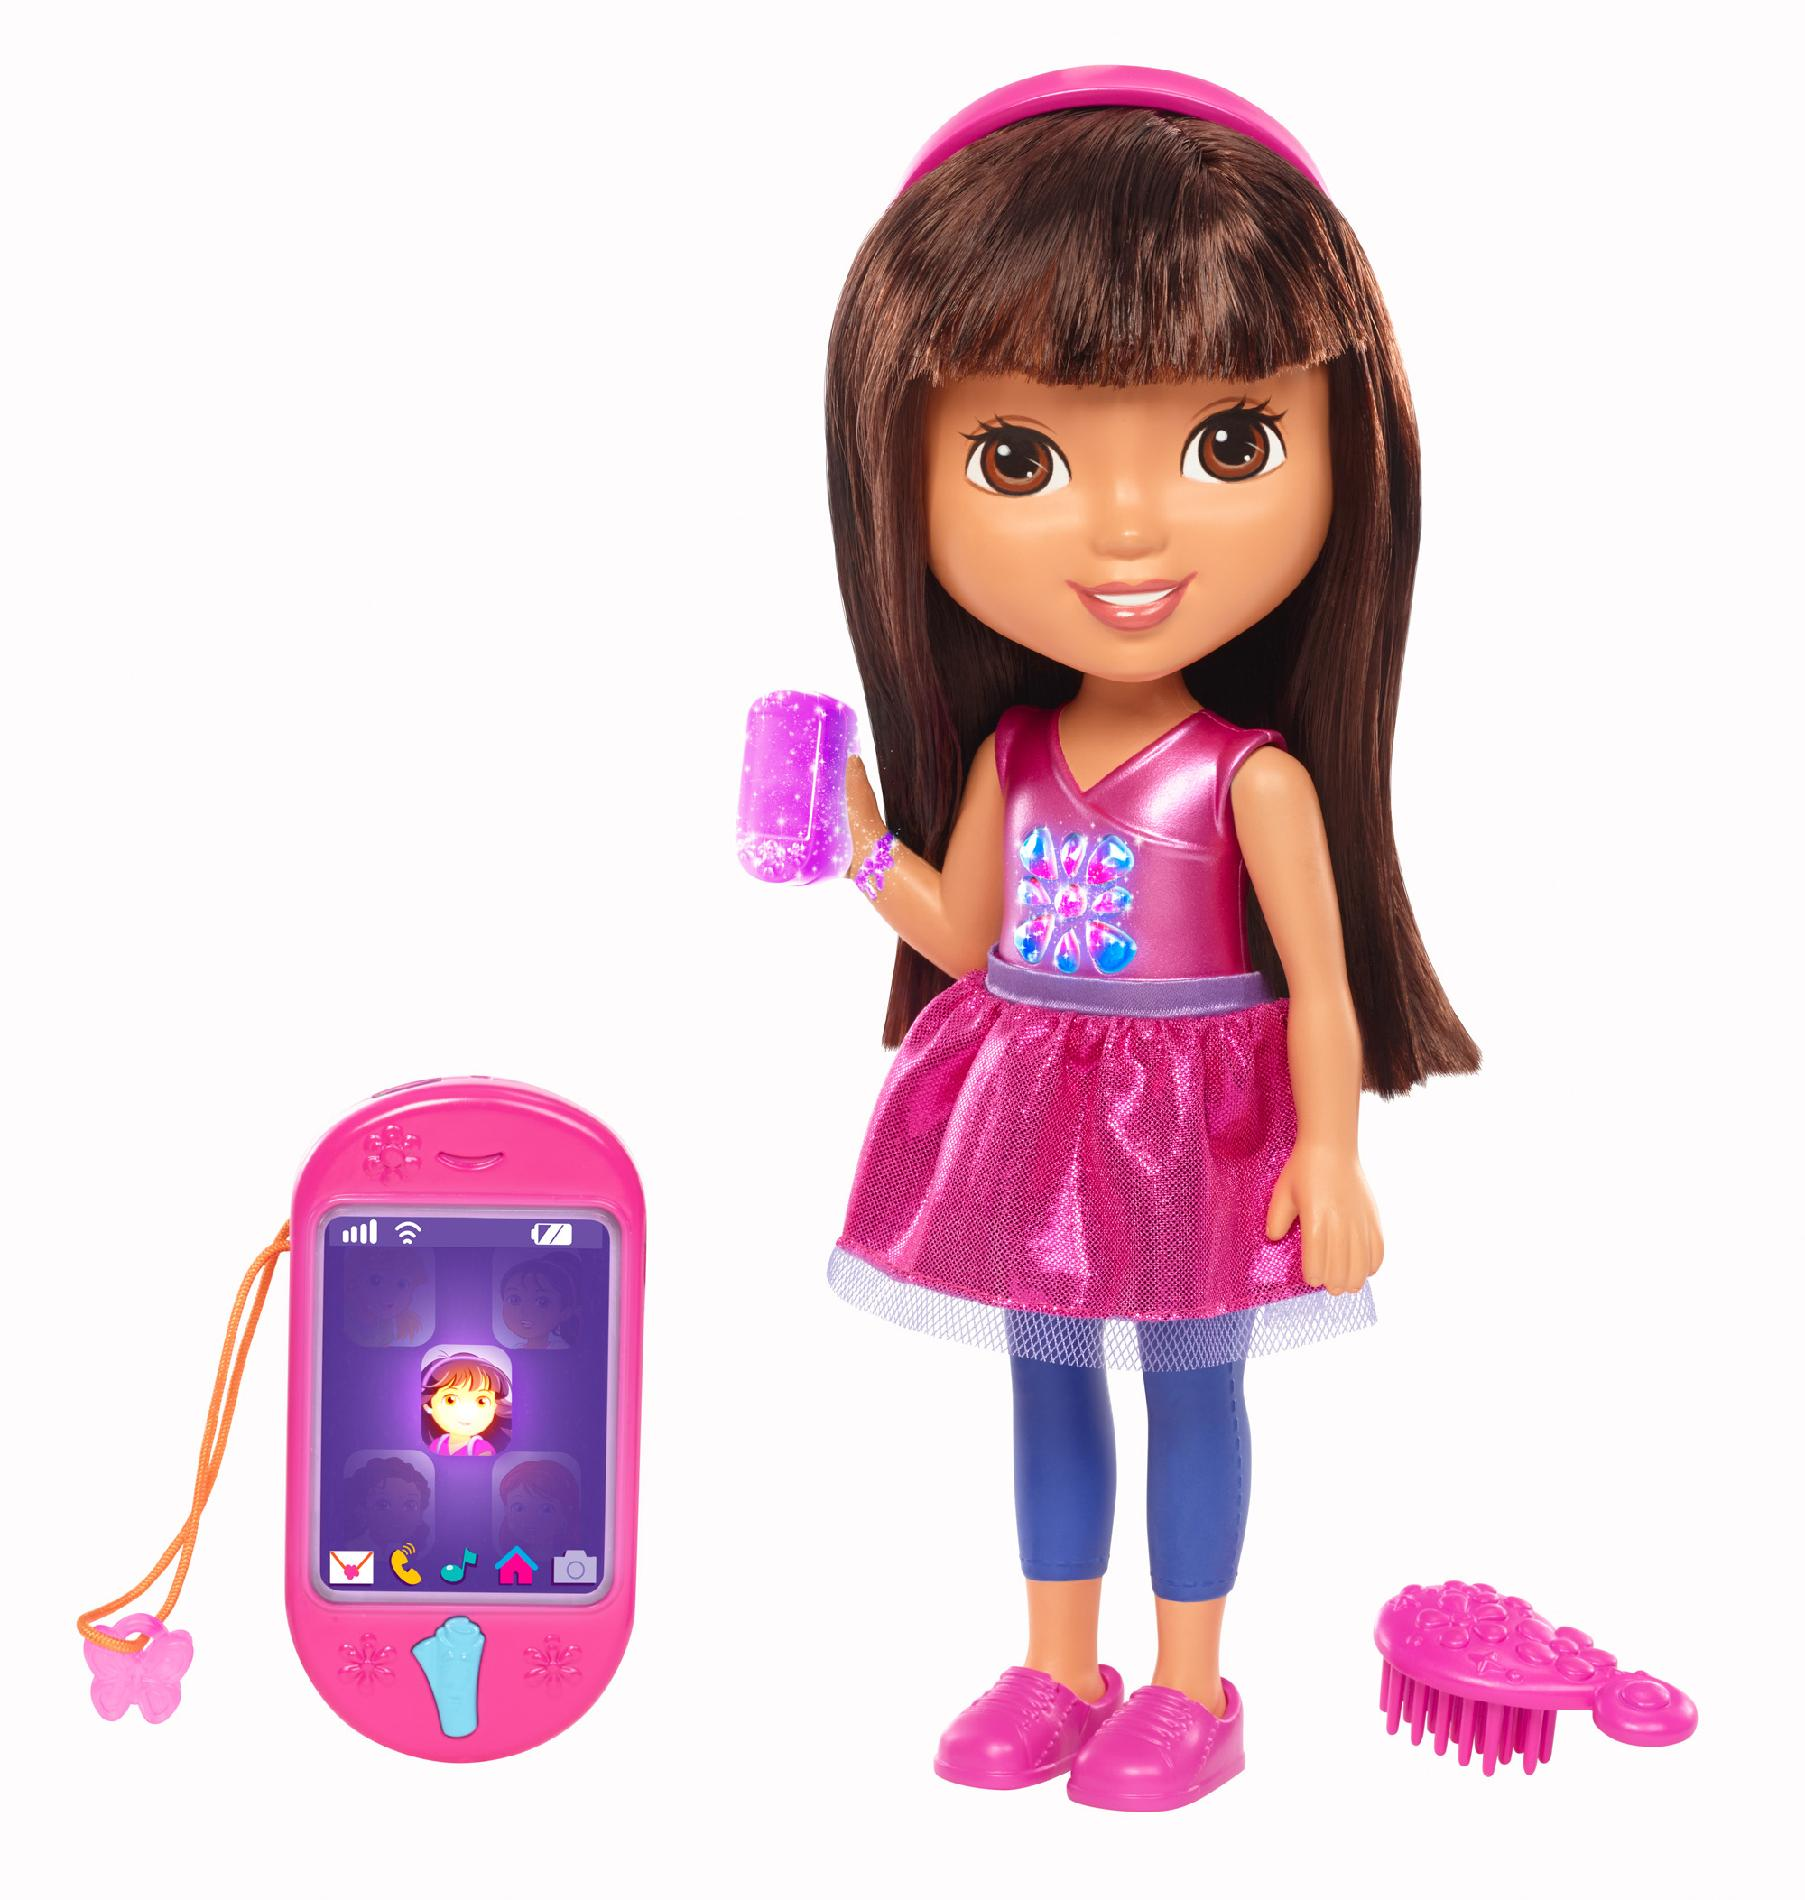 Nickelodeon Talking Dora And Smartphone By Fisher Price